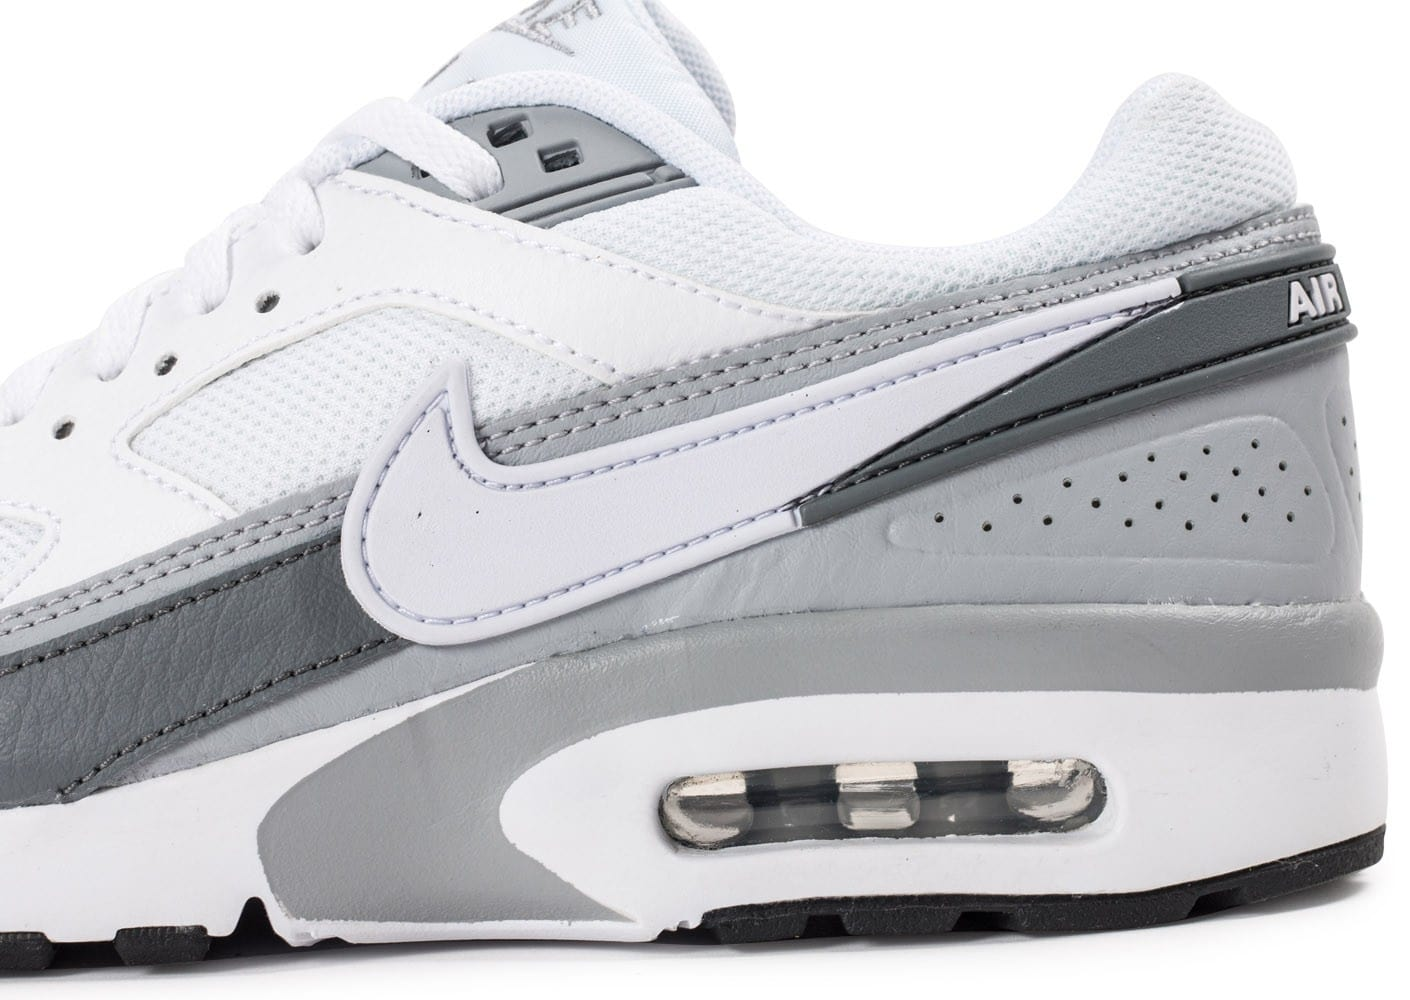 best service 8308e f1ed5 ... Chaussures Nike Air Max BW Junior blanche et grise vue dessus